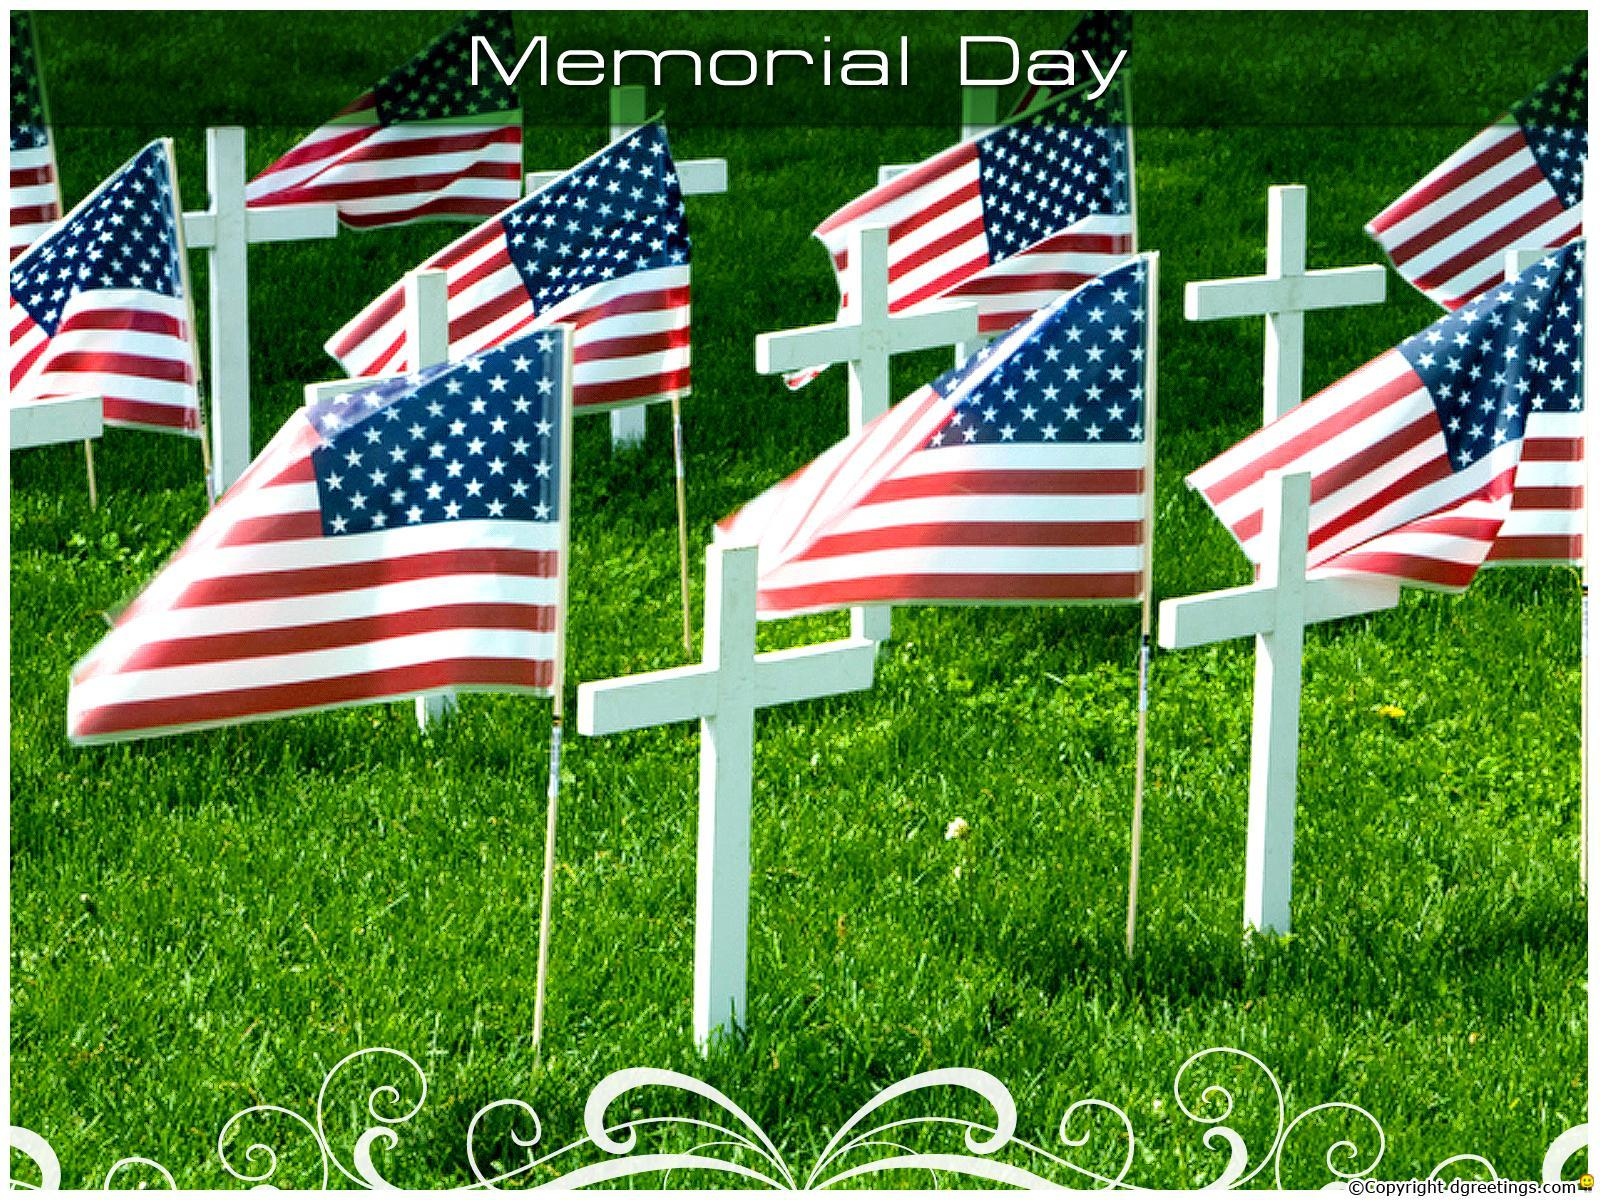 Memorial day 2019 background images